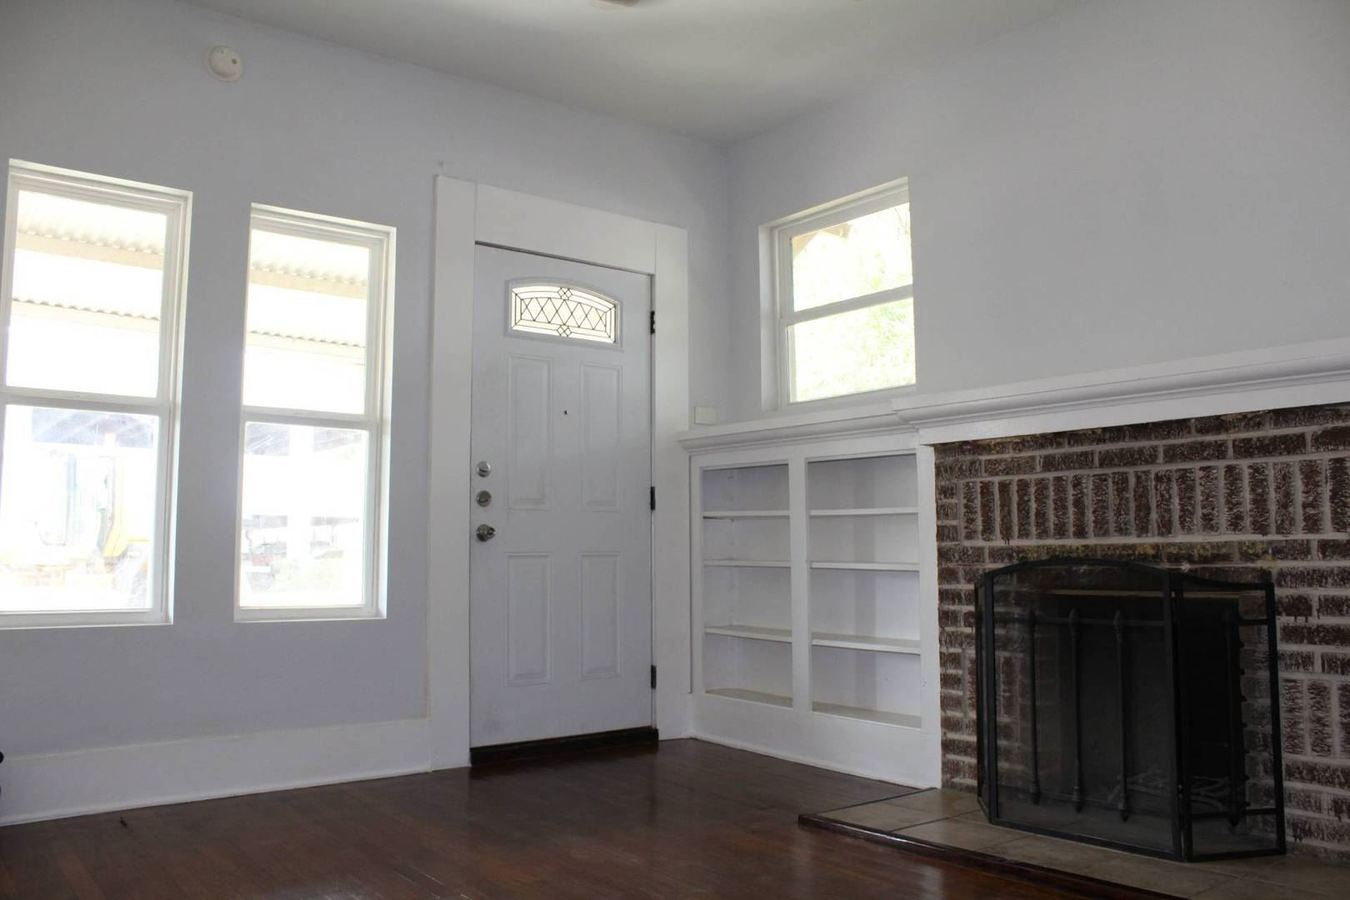 1 Bedroom 1 Bathroom Apartment for rent at 826 Erie Ave in San Antonio, TX